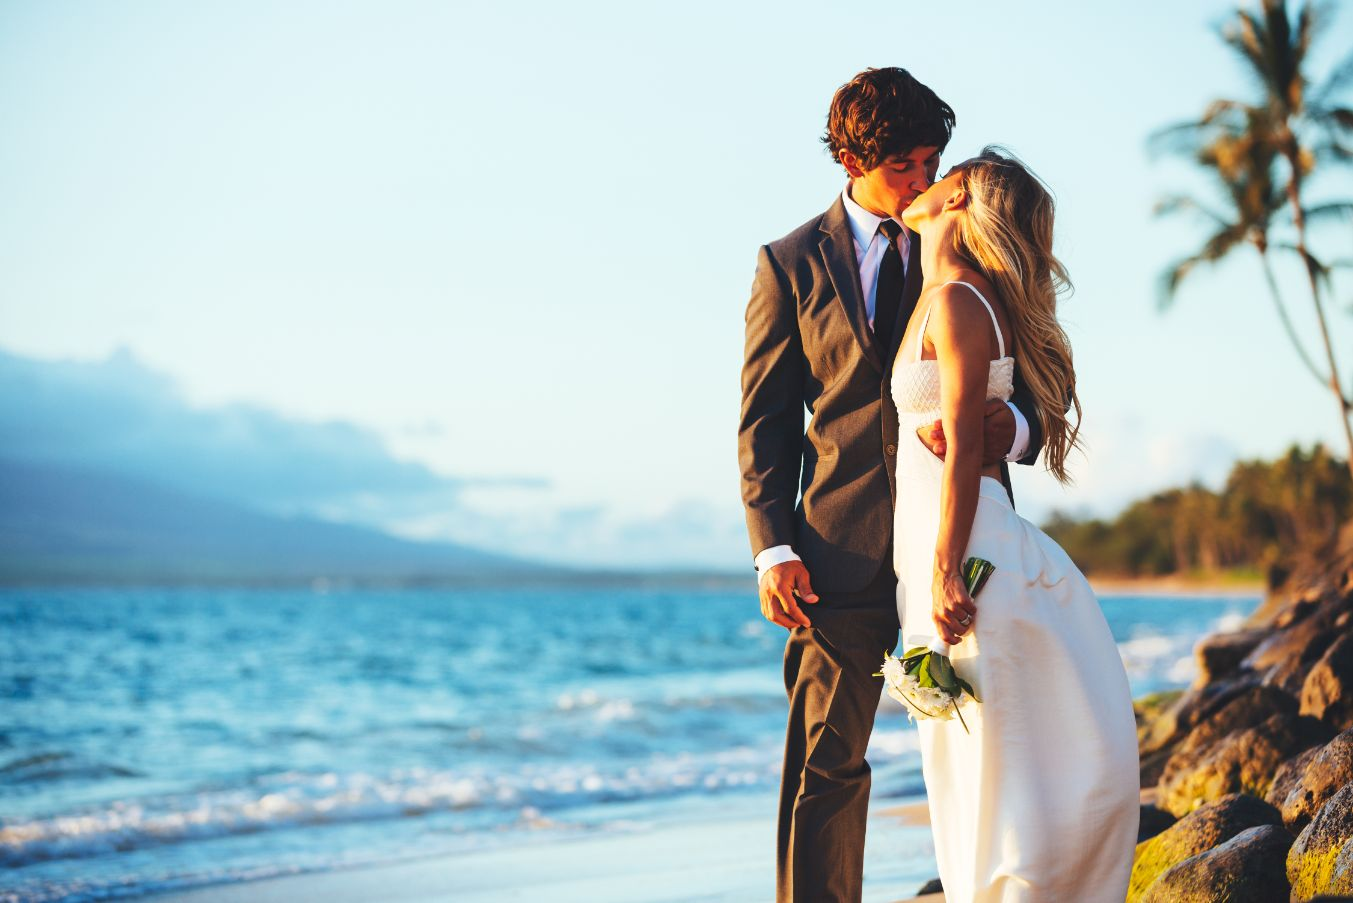 9 Unique Wedding Photography Ideas To Capture The True Moment Of Love Inspirationfeed